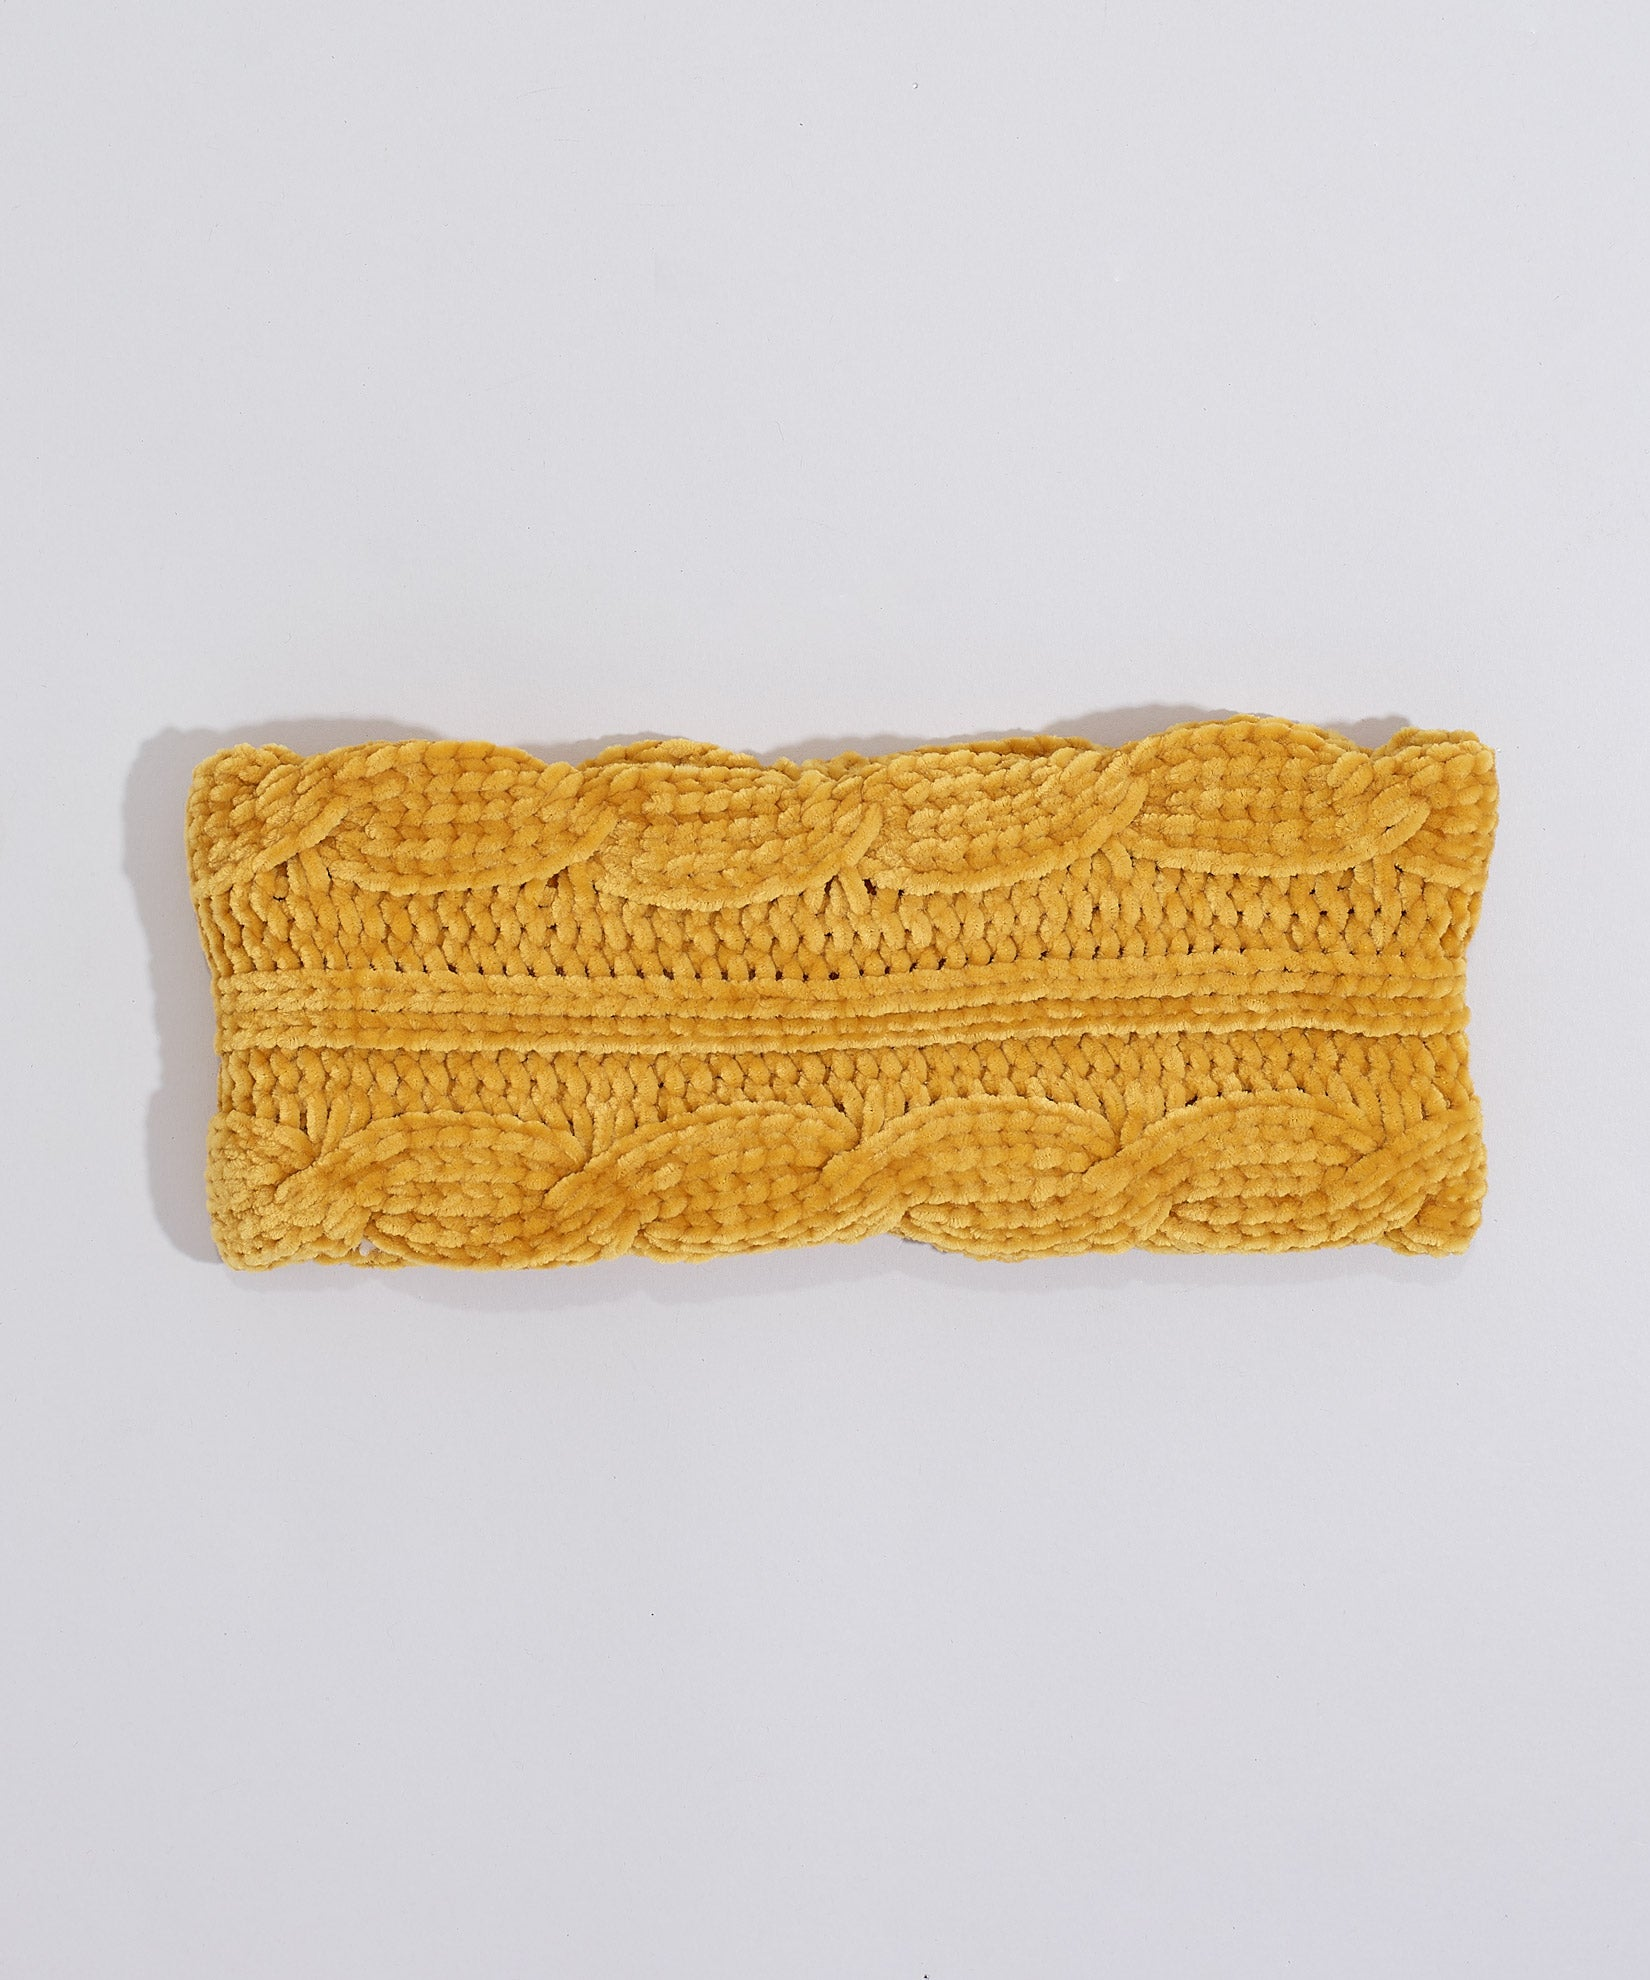 Gold - Chenille Headband With Cables